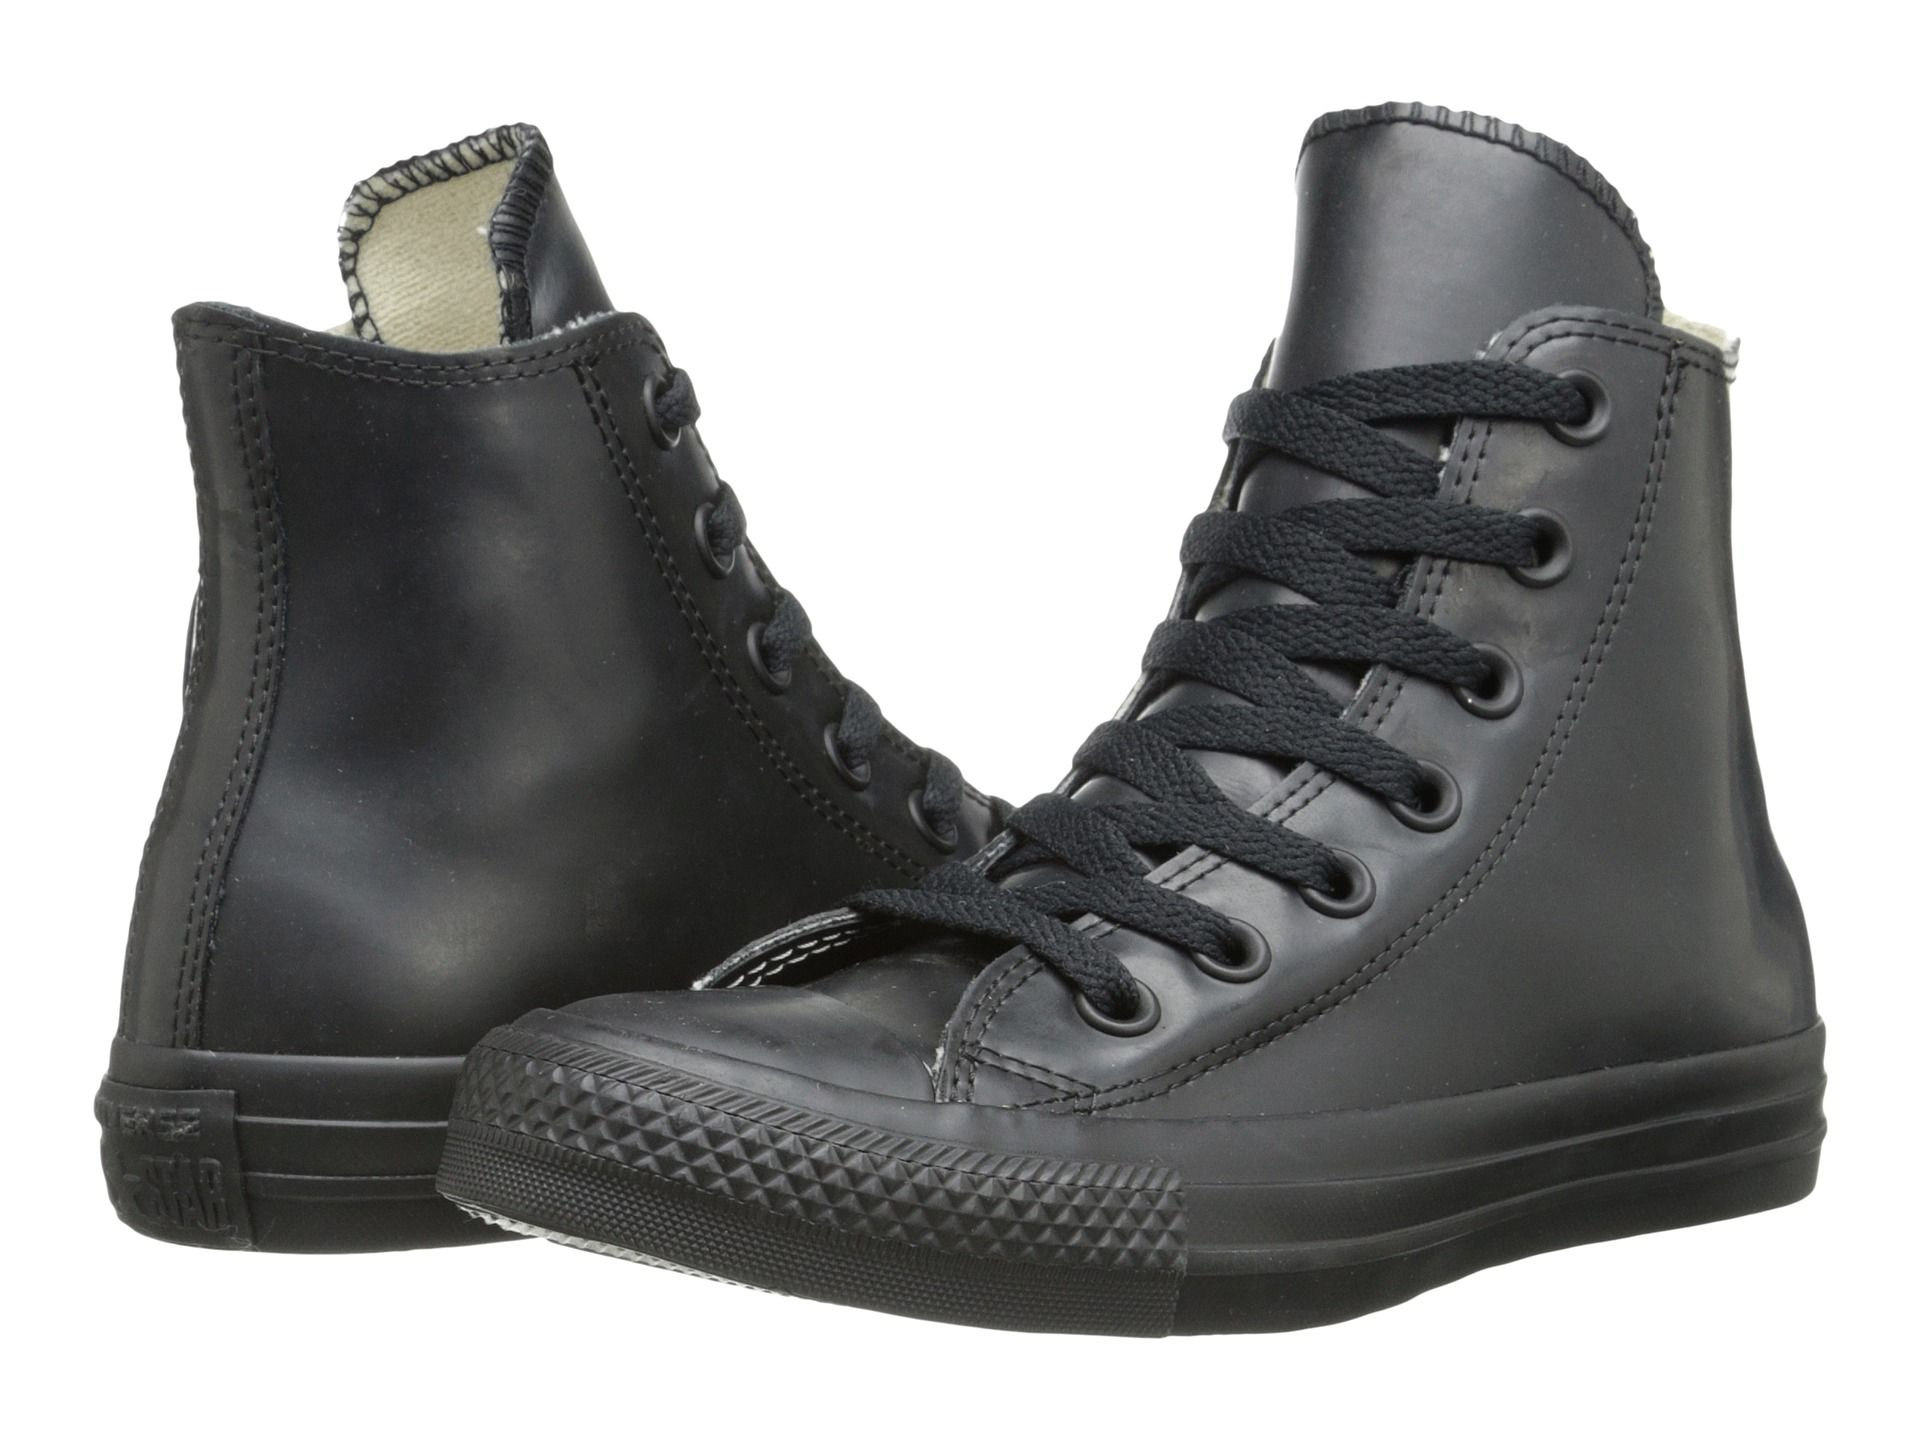 I can't wait to get a pair of these black high top converse rain boots!